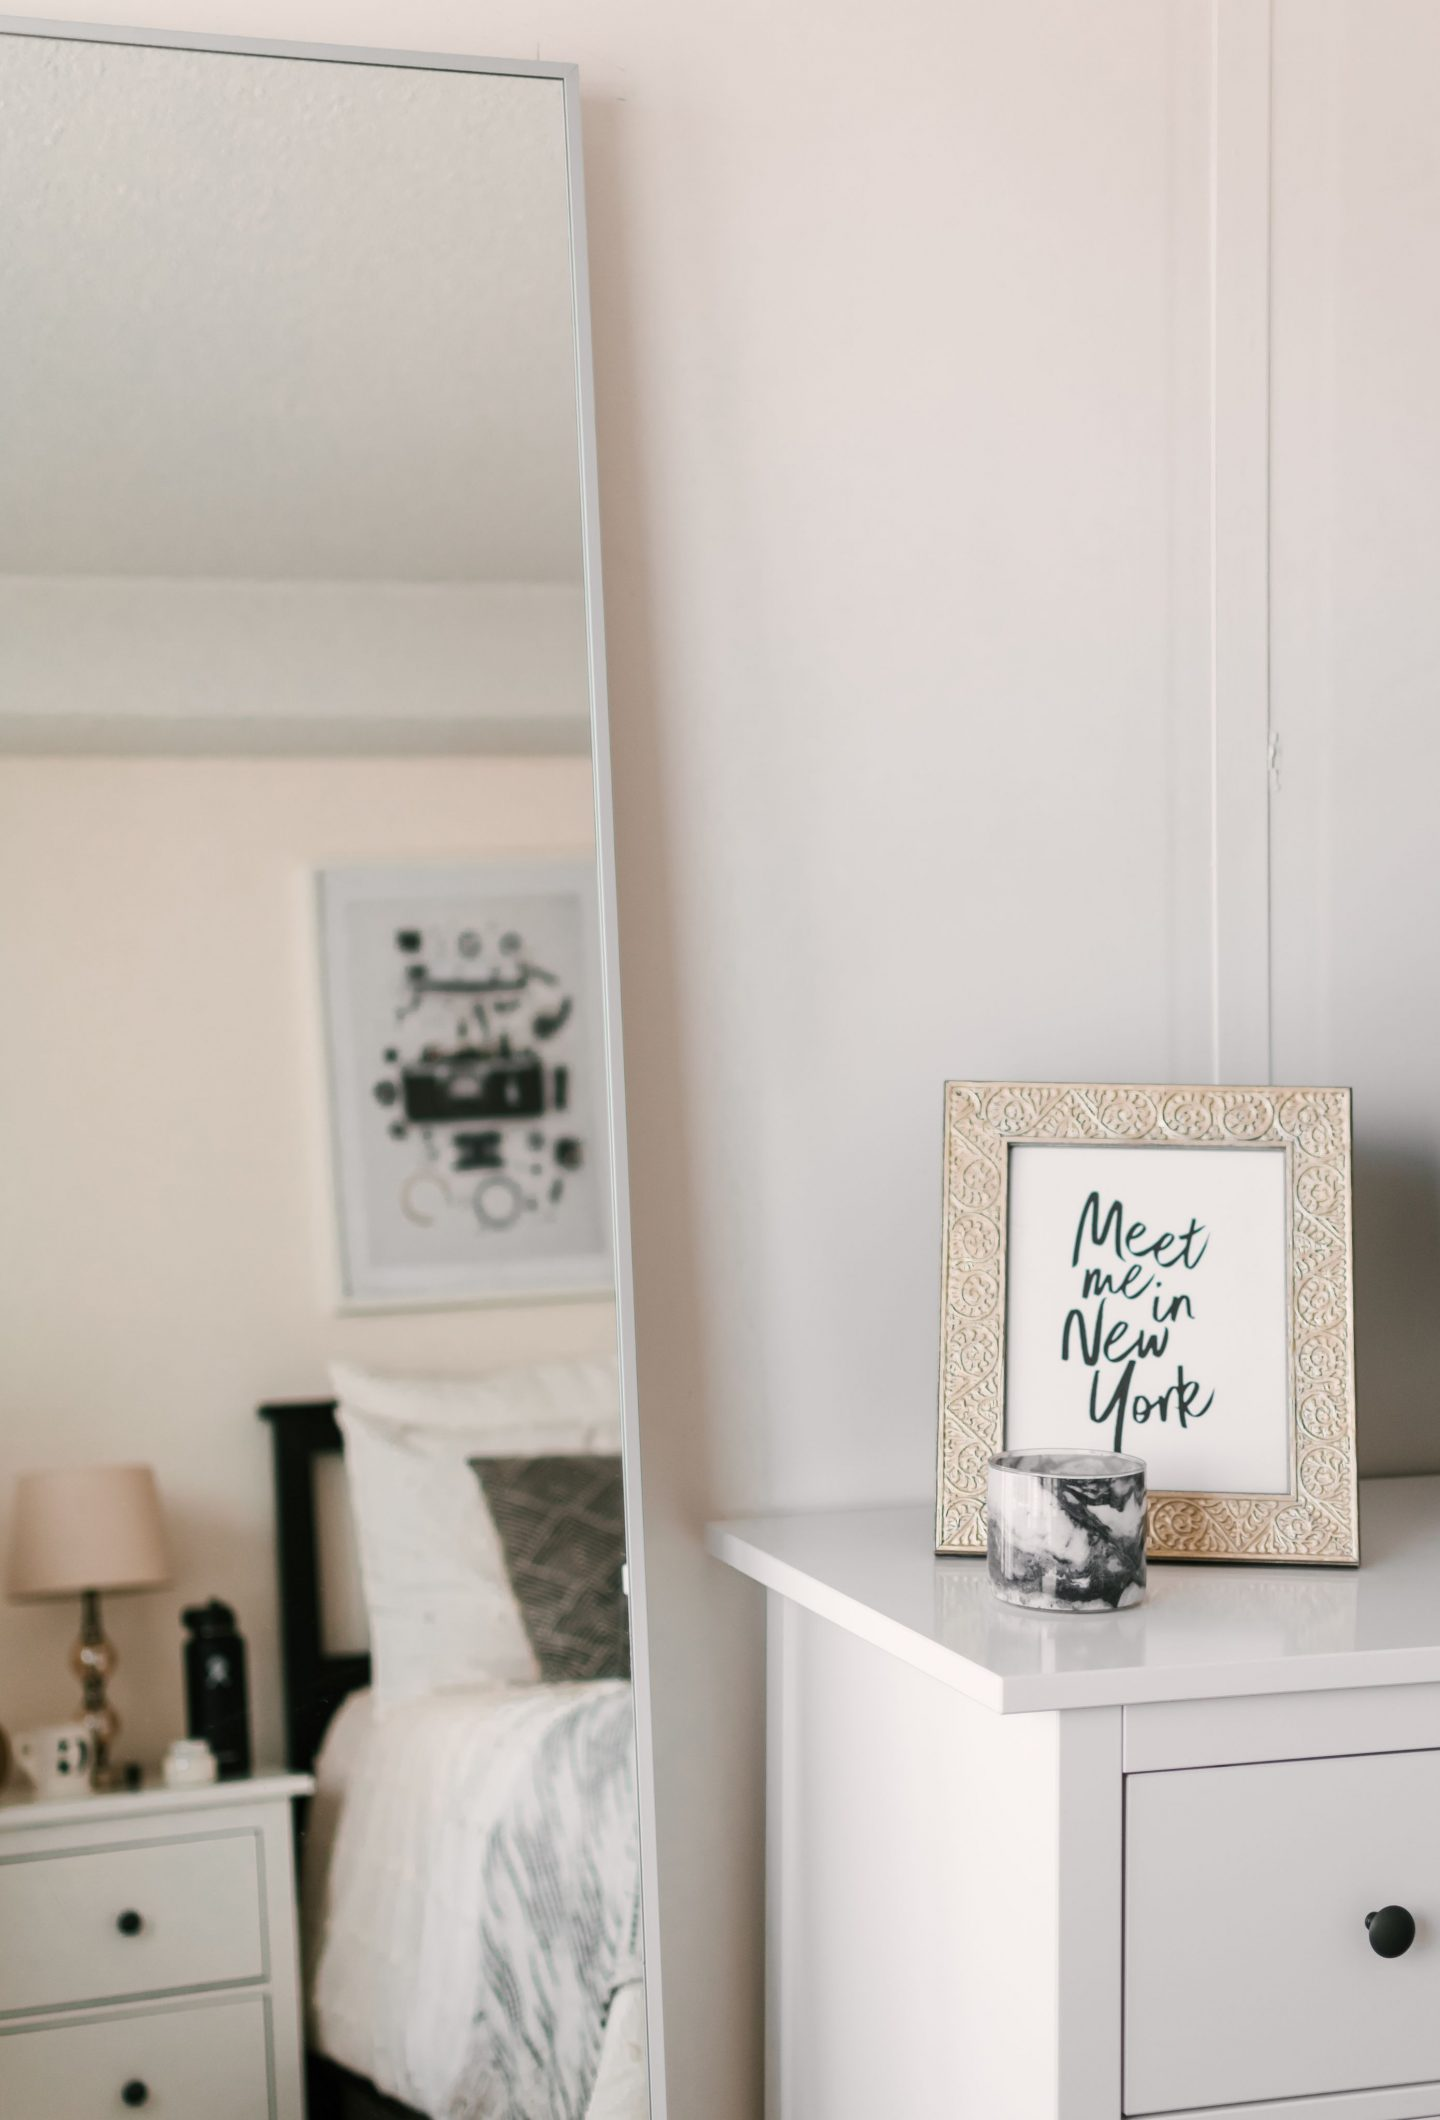 6 Tips For Decorating Your First Apartment On A Budget Gabby In The City